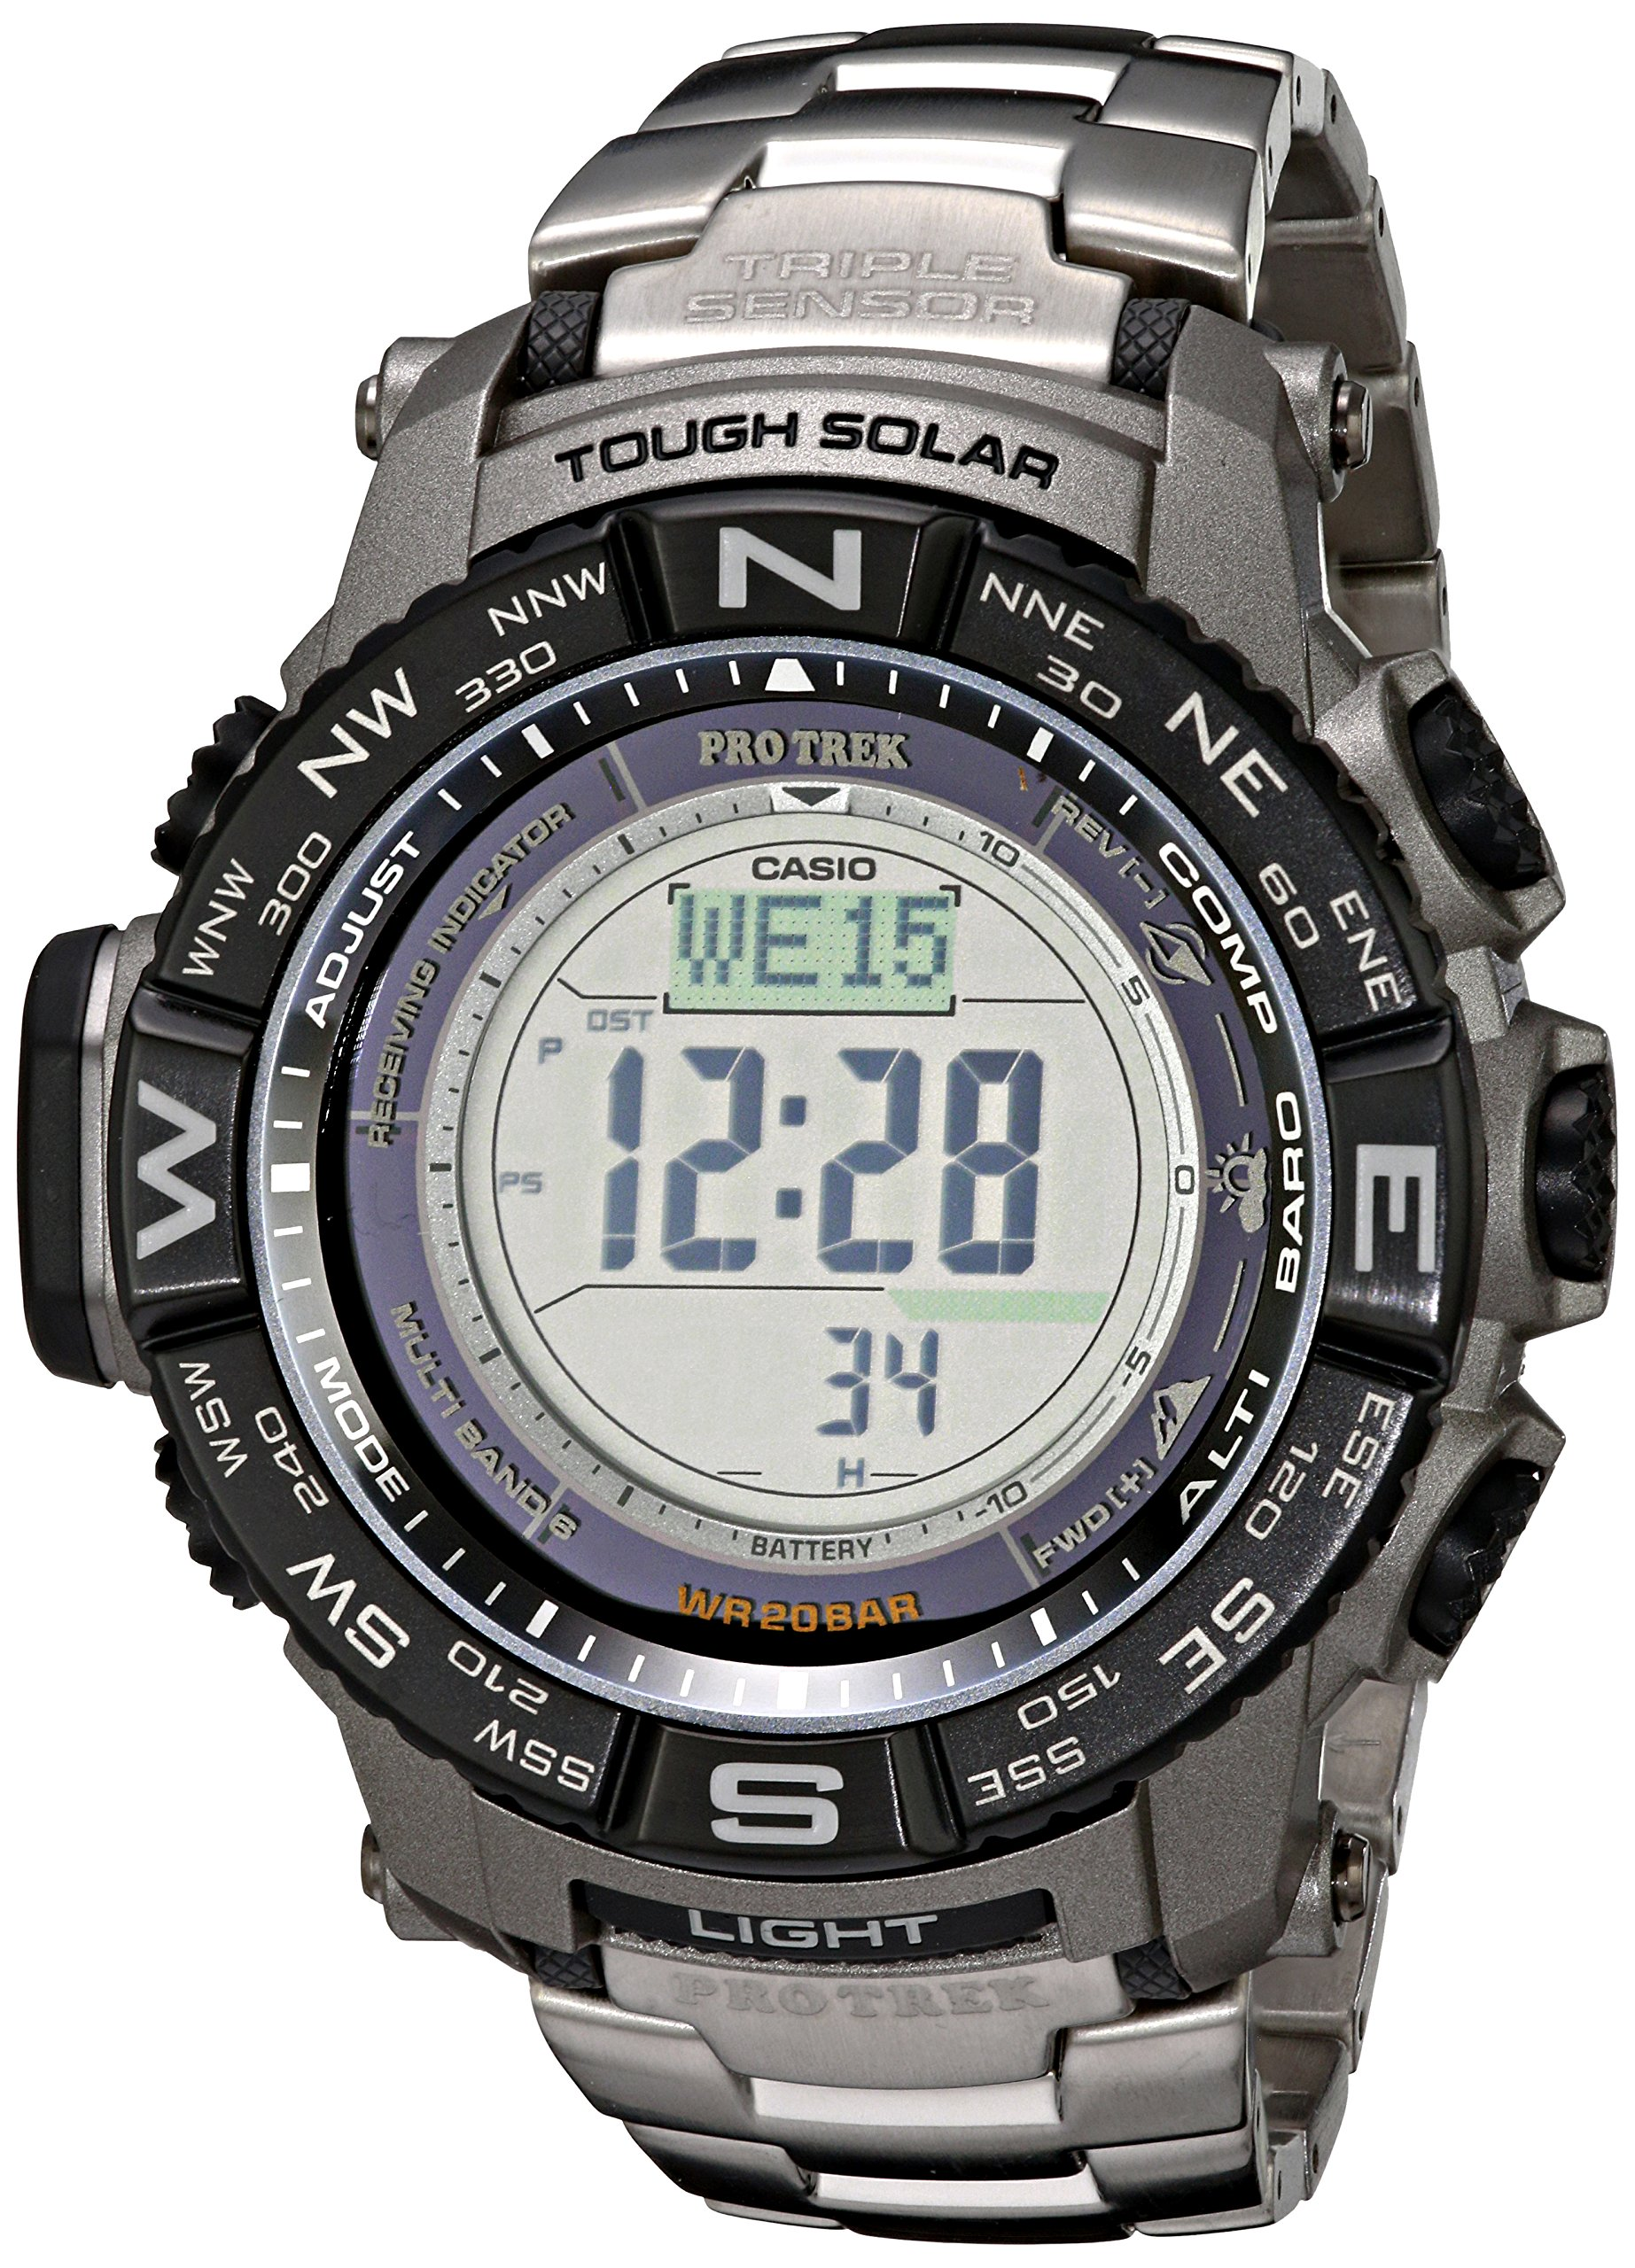 Casio Men's Pro Trek PRW-3500T-7CR Tough Solar Triple Sensor Digital Sport Watch by Casio